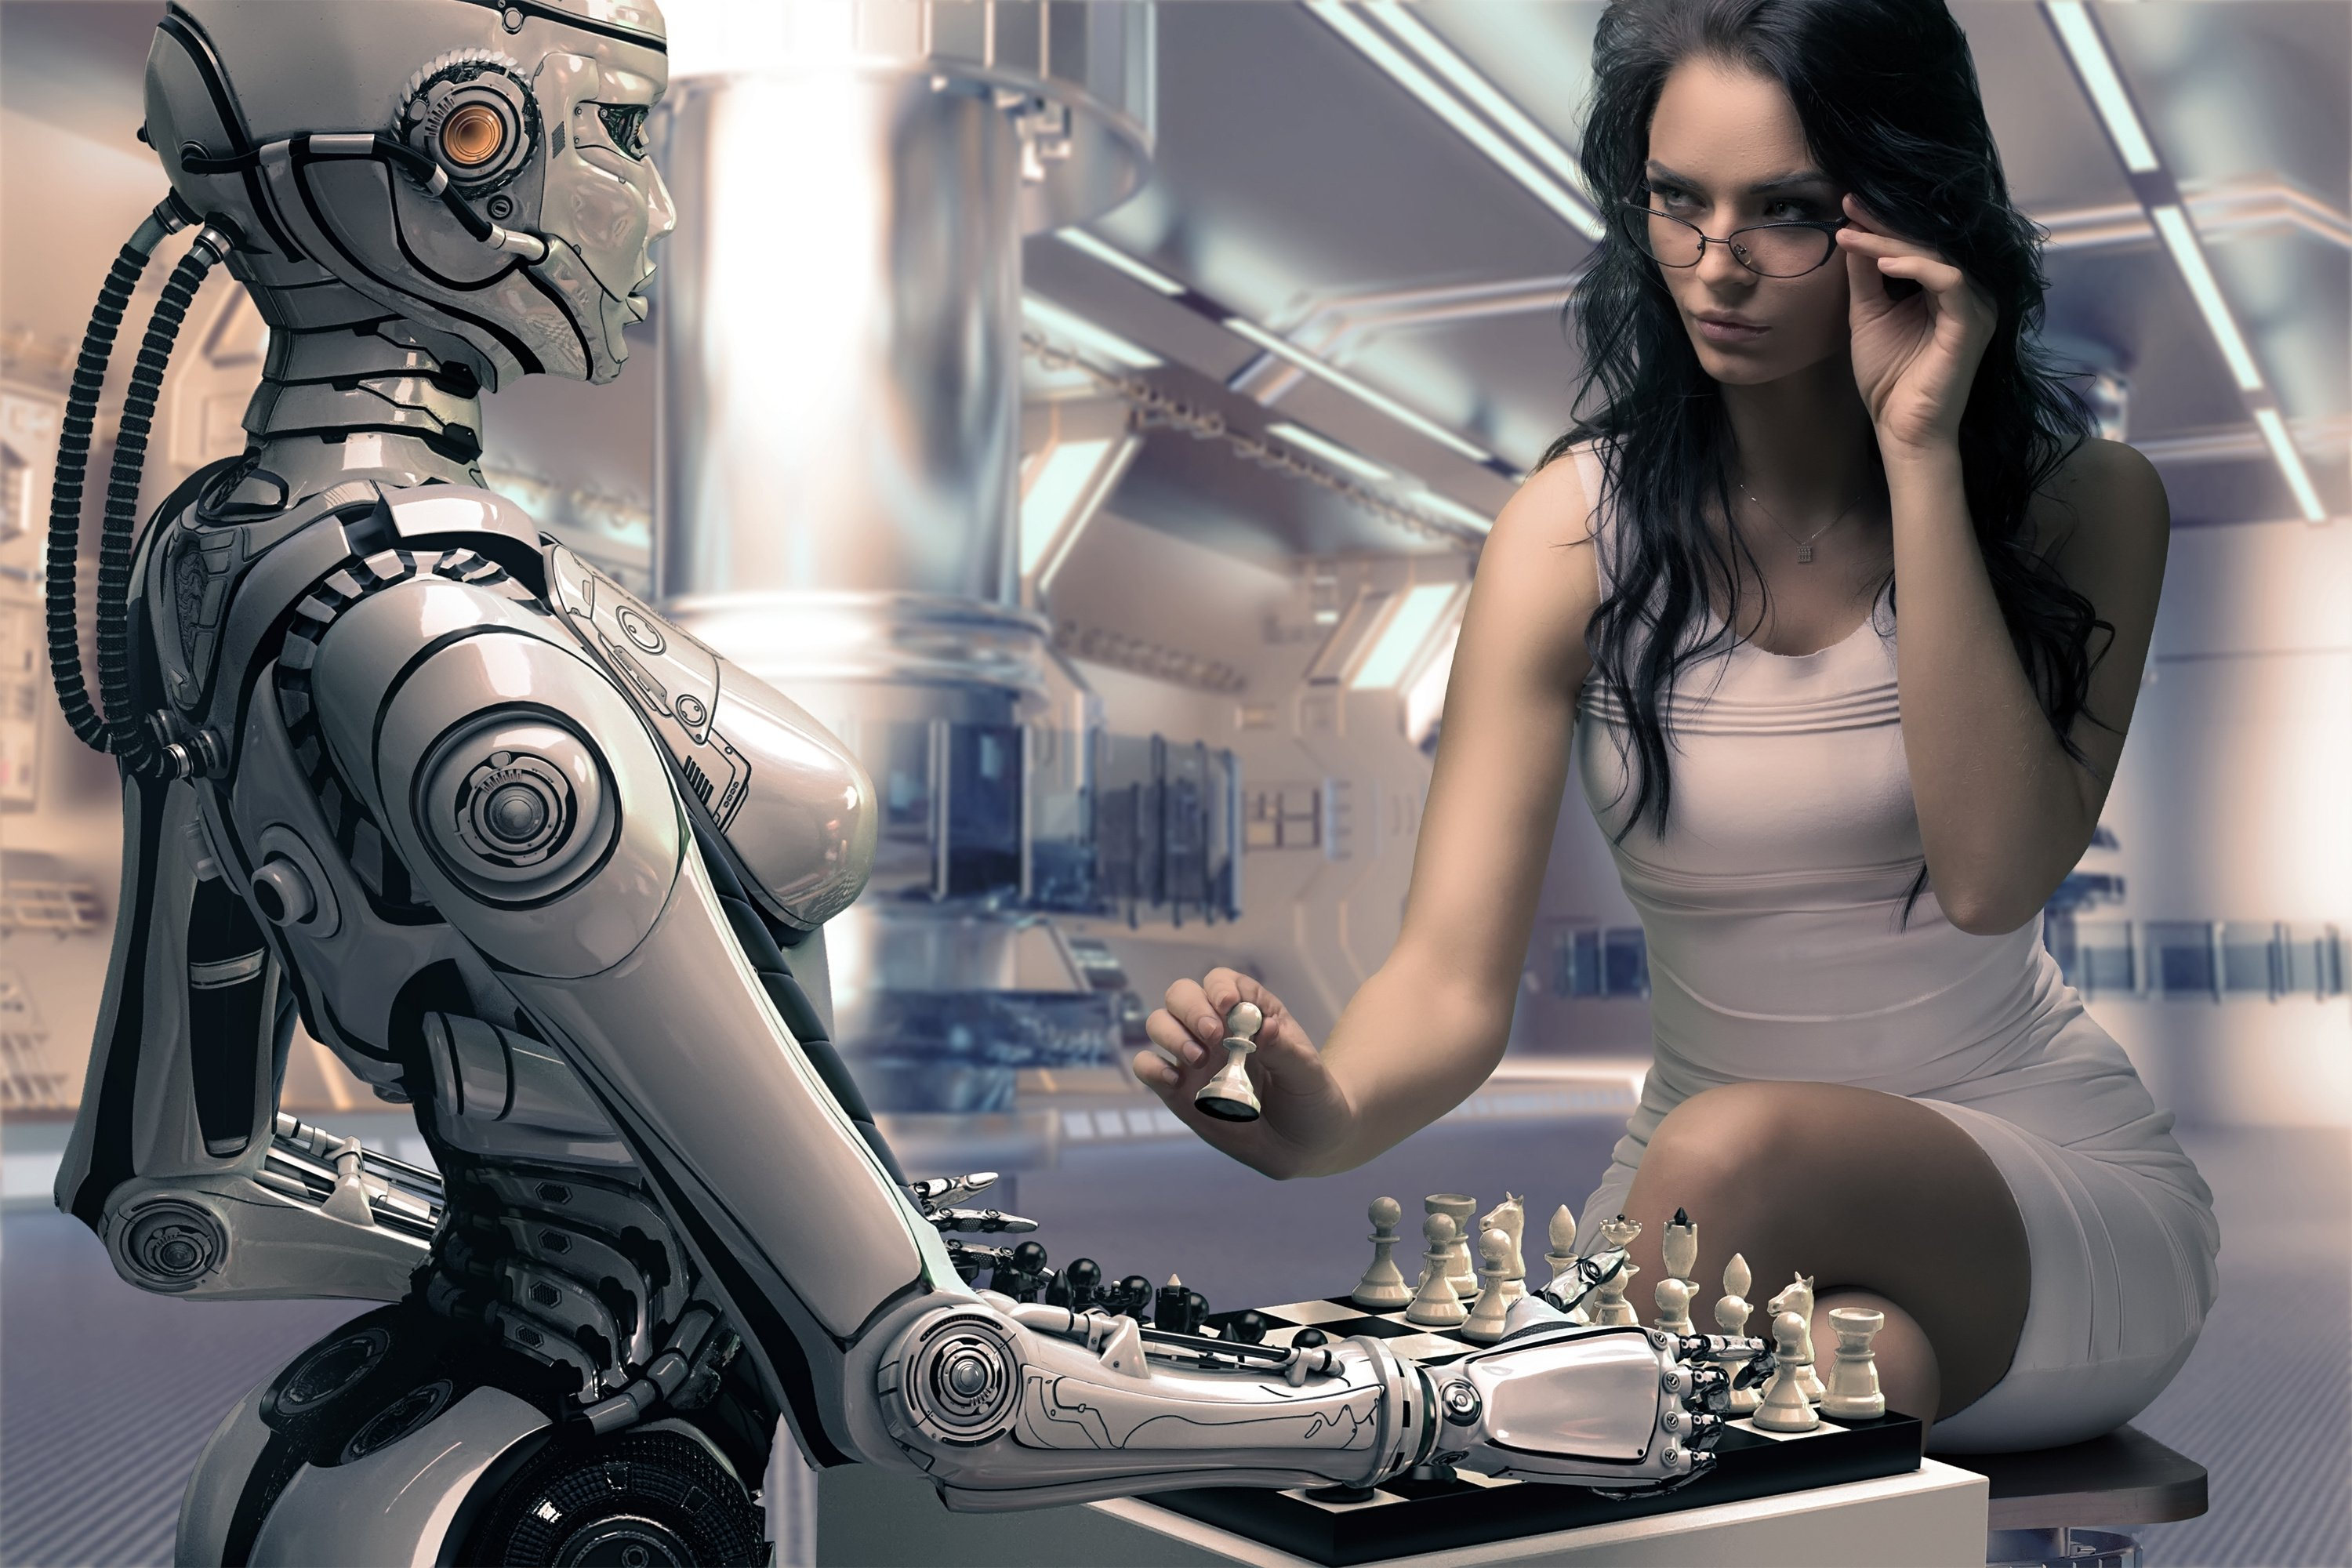 robot girl chess rendering wallpaper | 3000x2000 | 849277 | wallpaperup